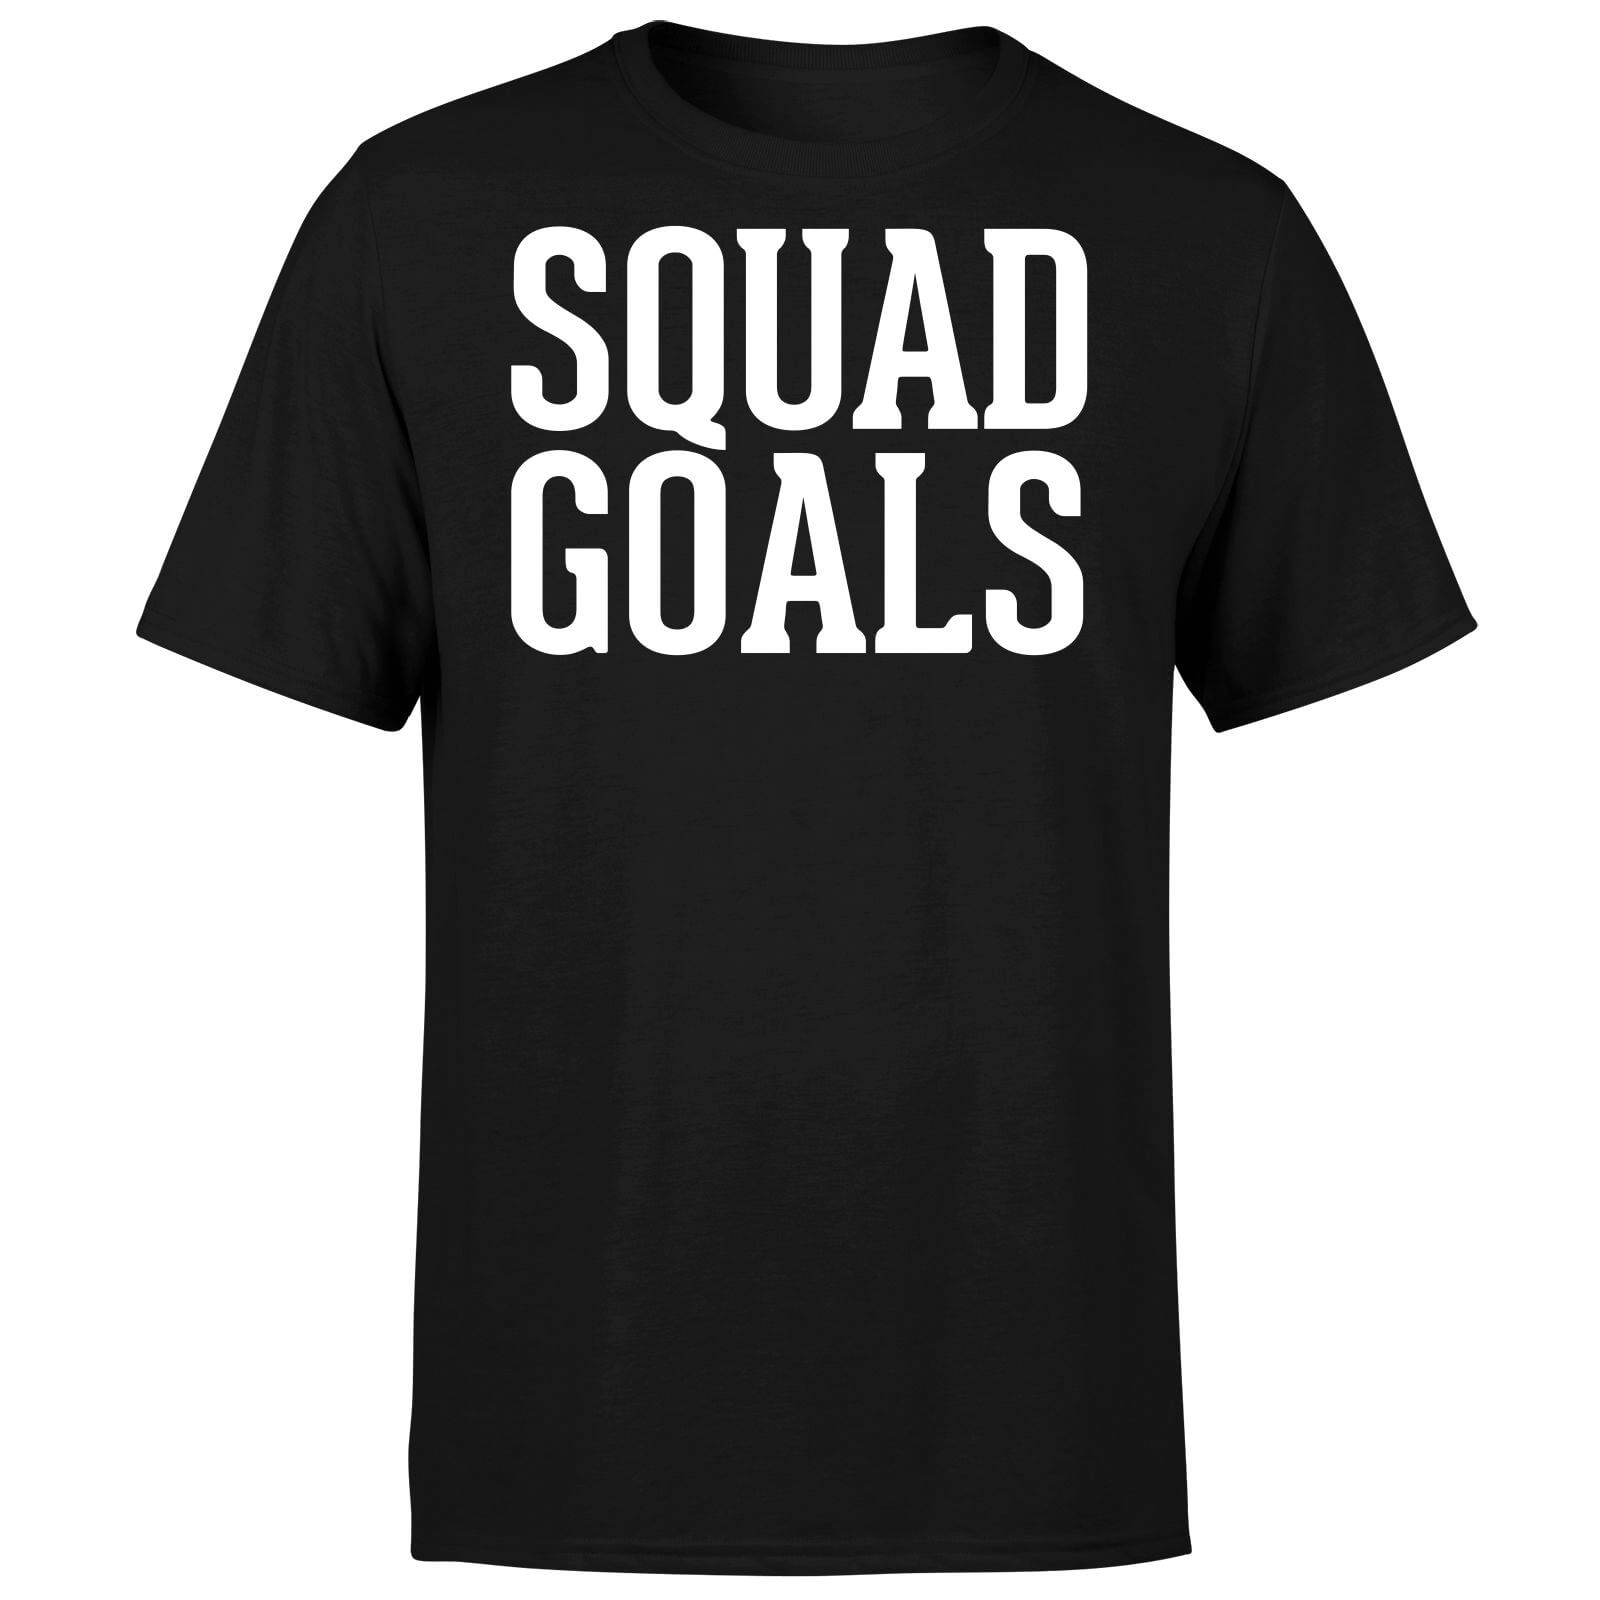 Squad Goals T-Shirt - Black